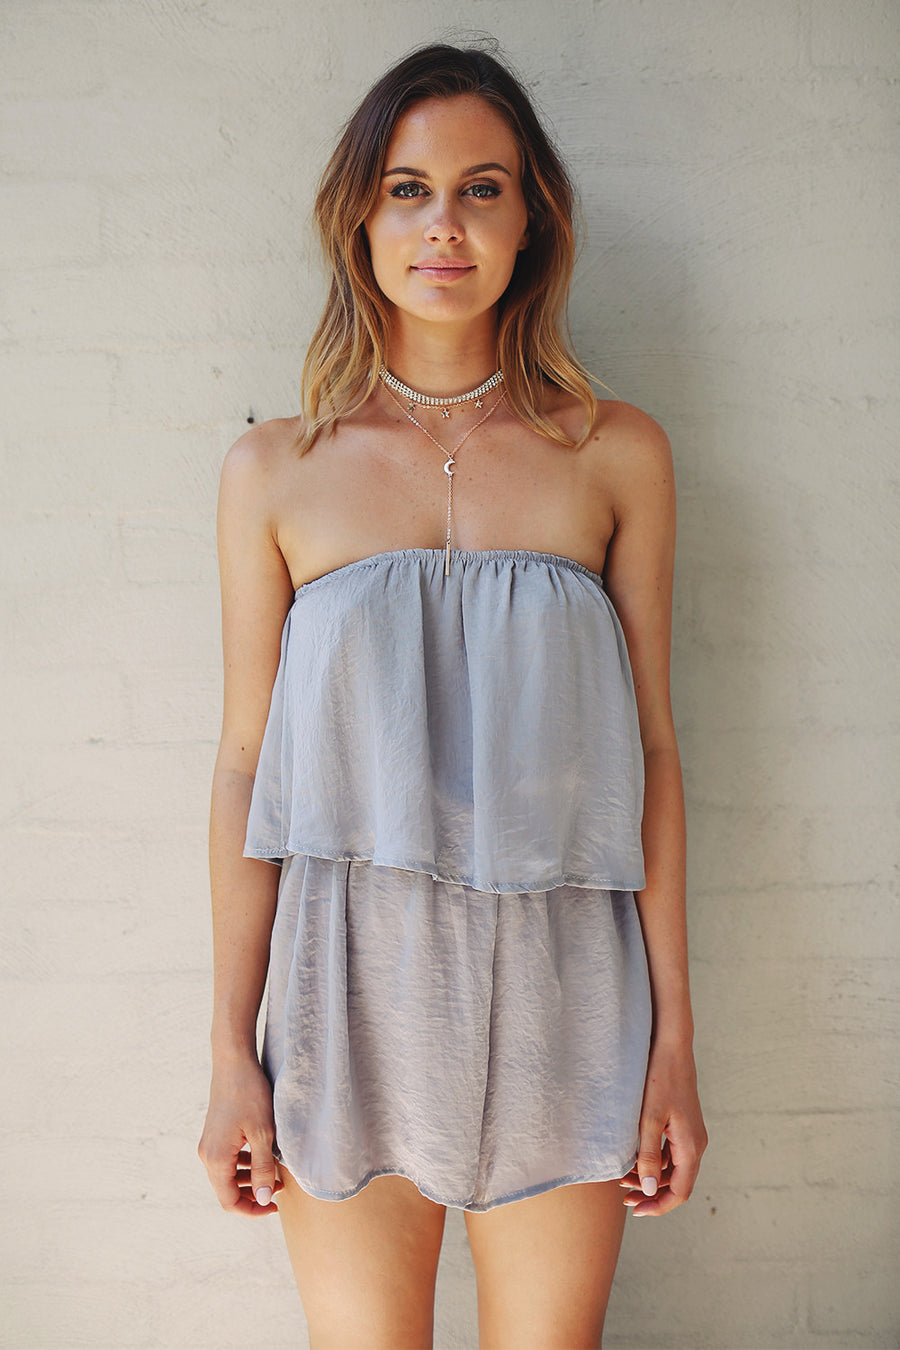 Flirt With Fire Playsuit in Silver - HER Empire Fashion Boutique Terrigal & Online